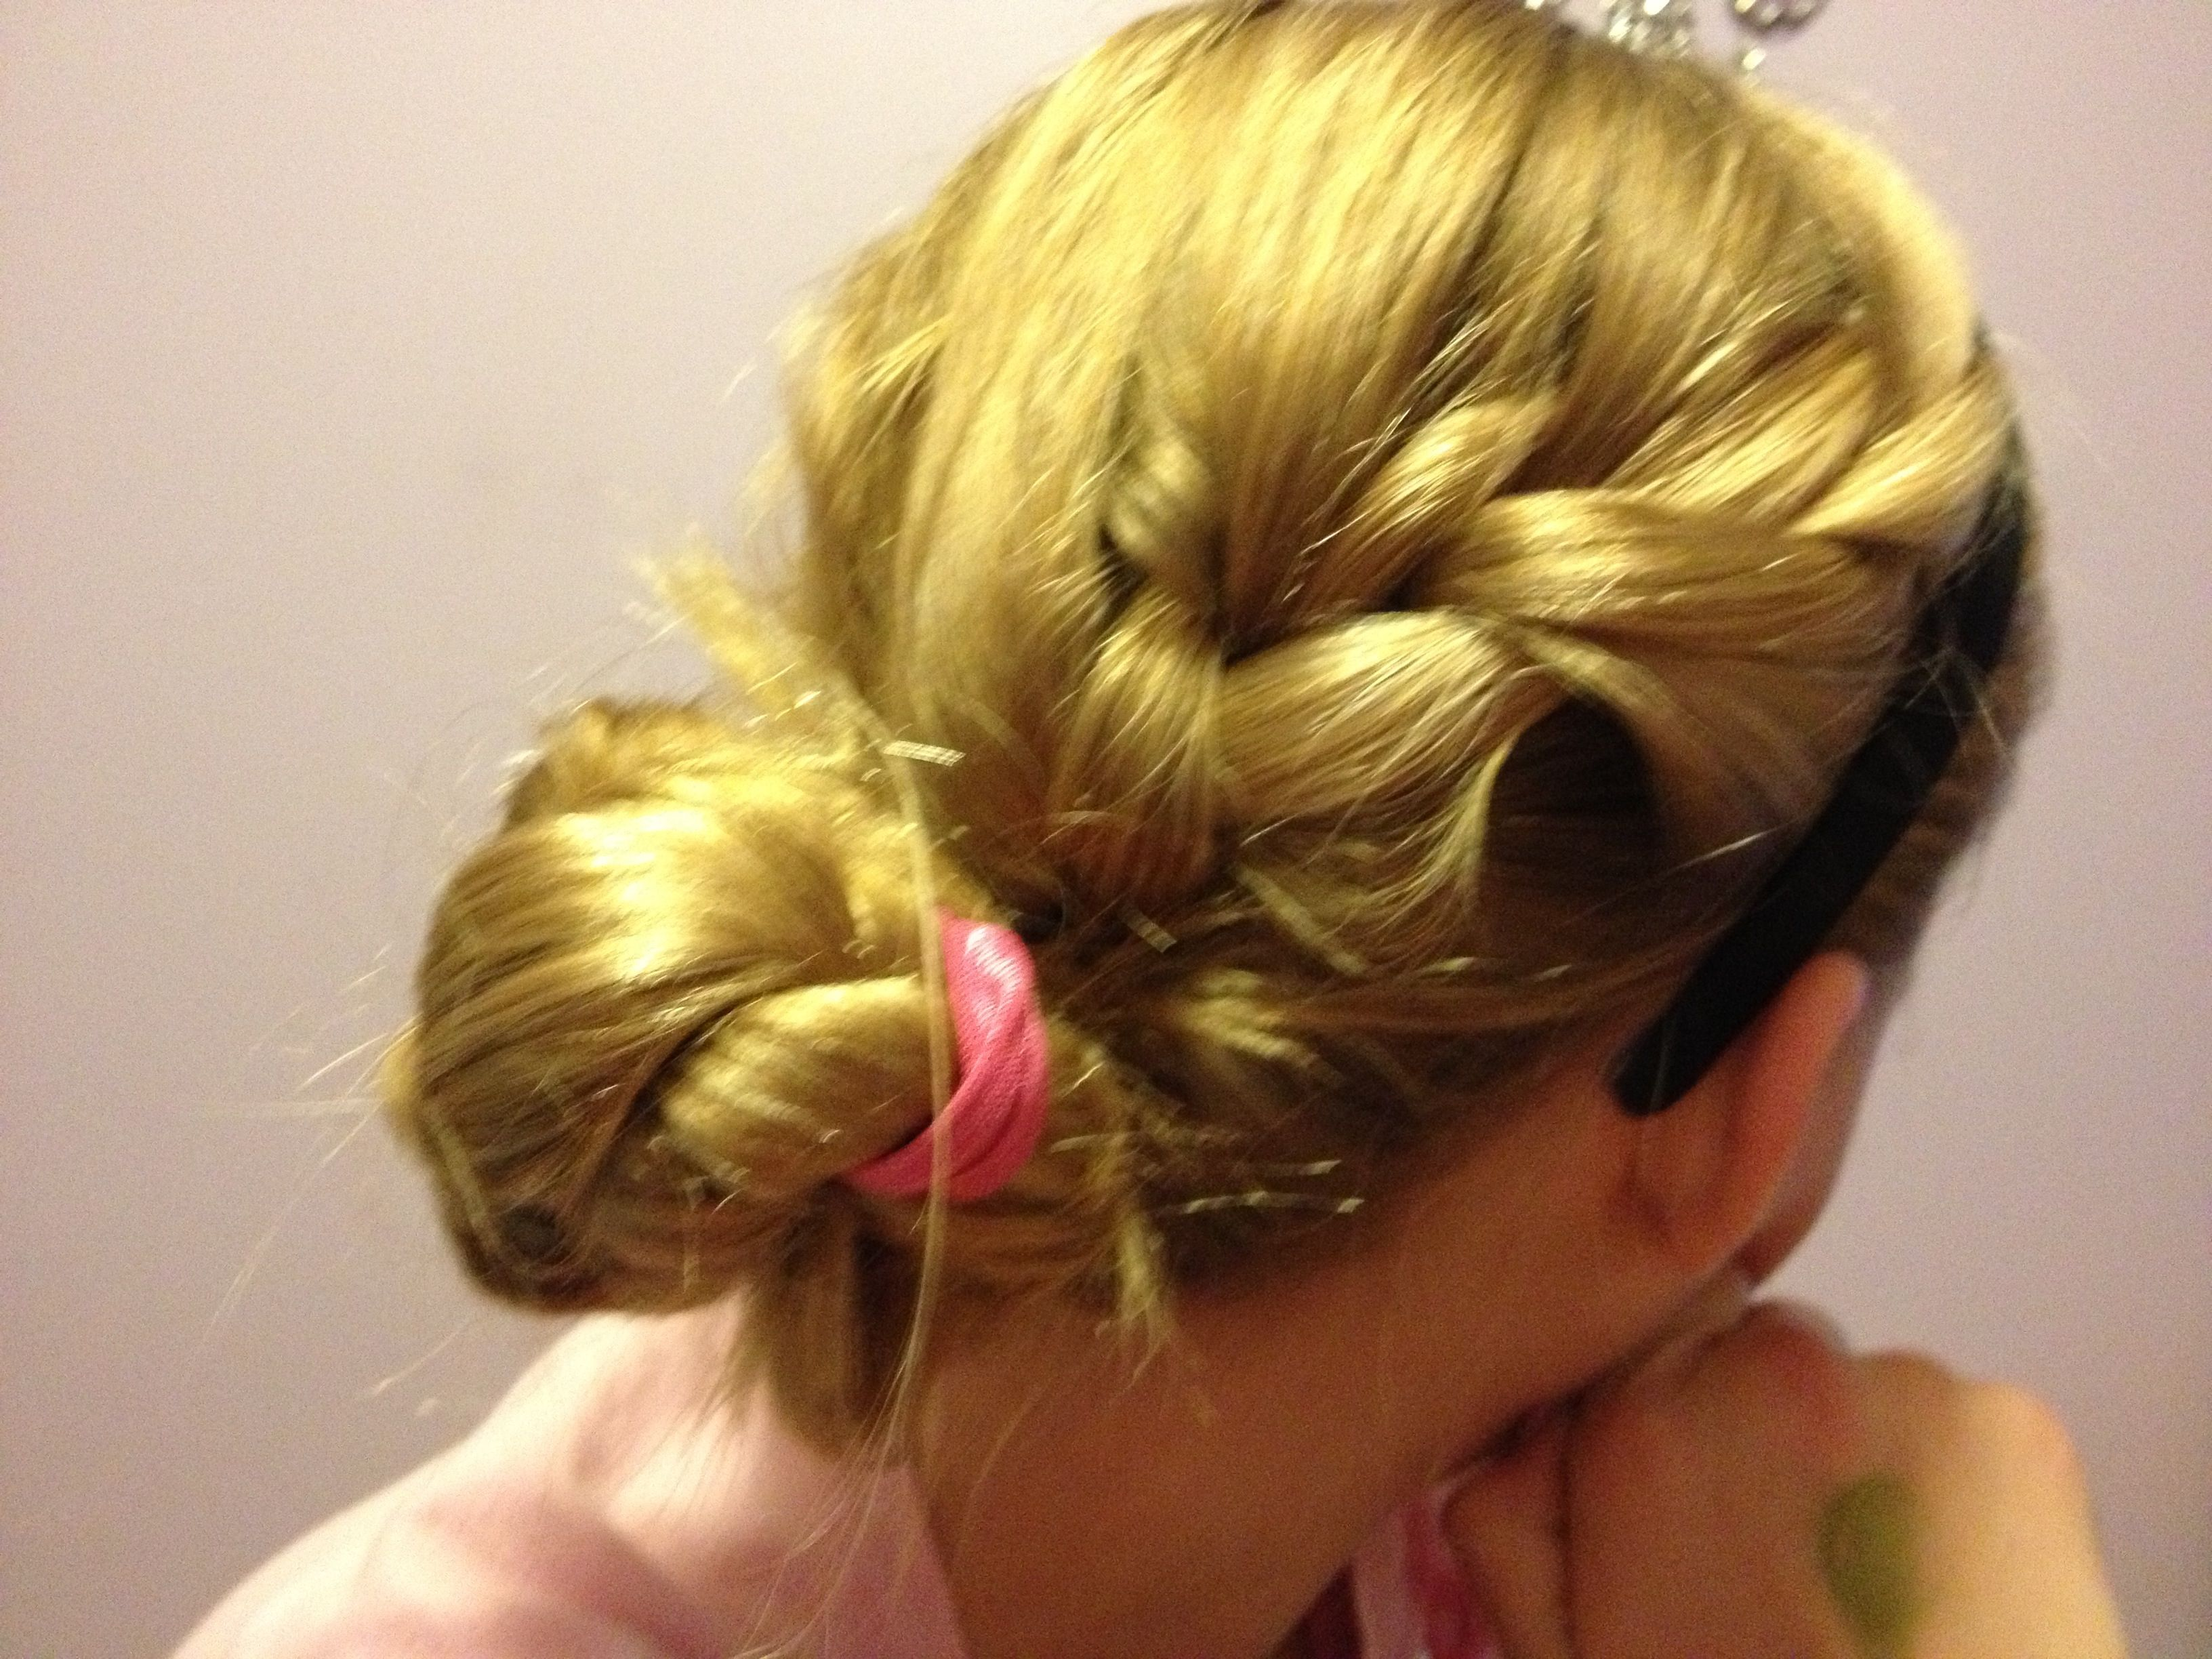 Super simple and cute hairstyle just a side french braid continue